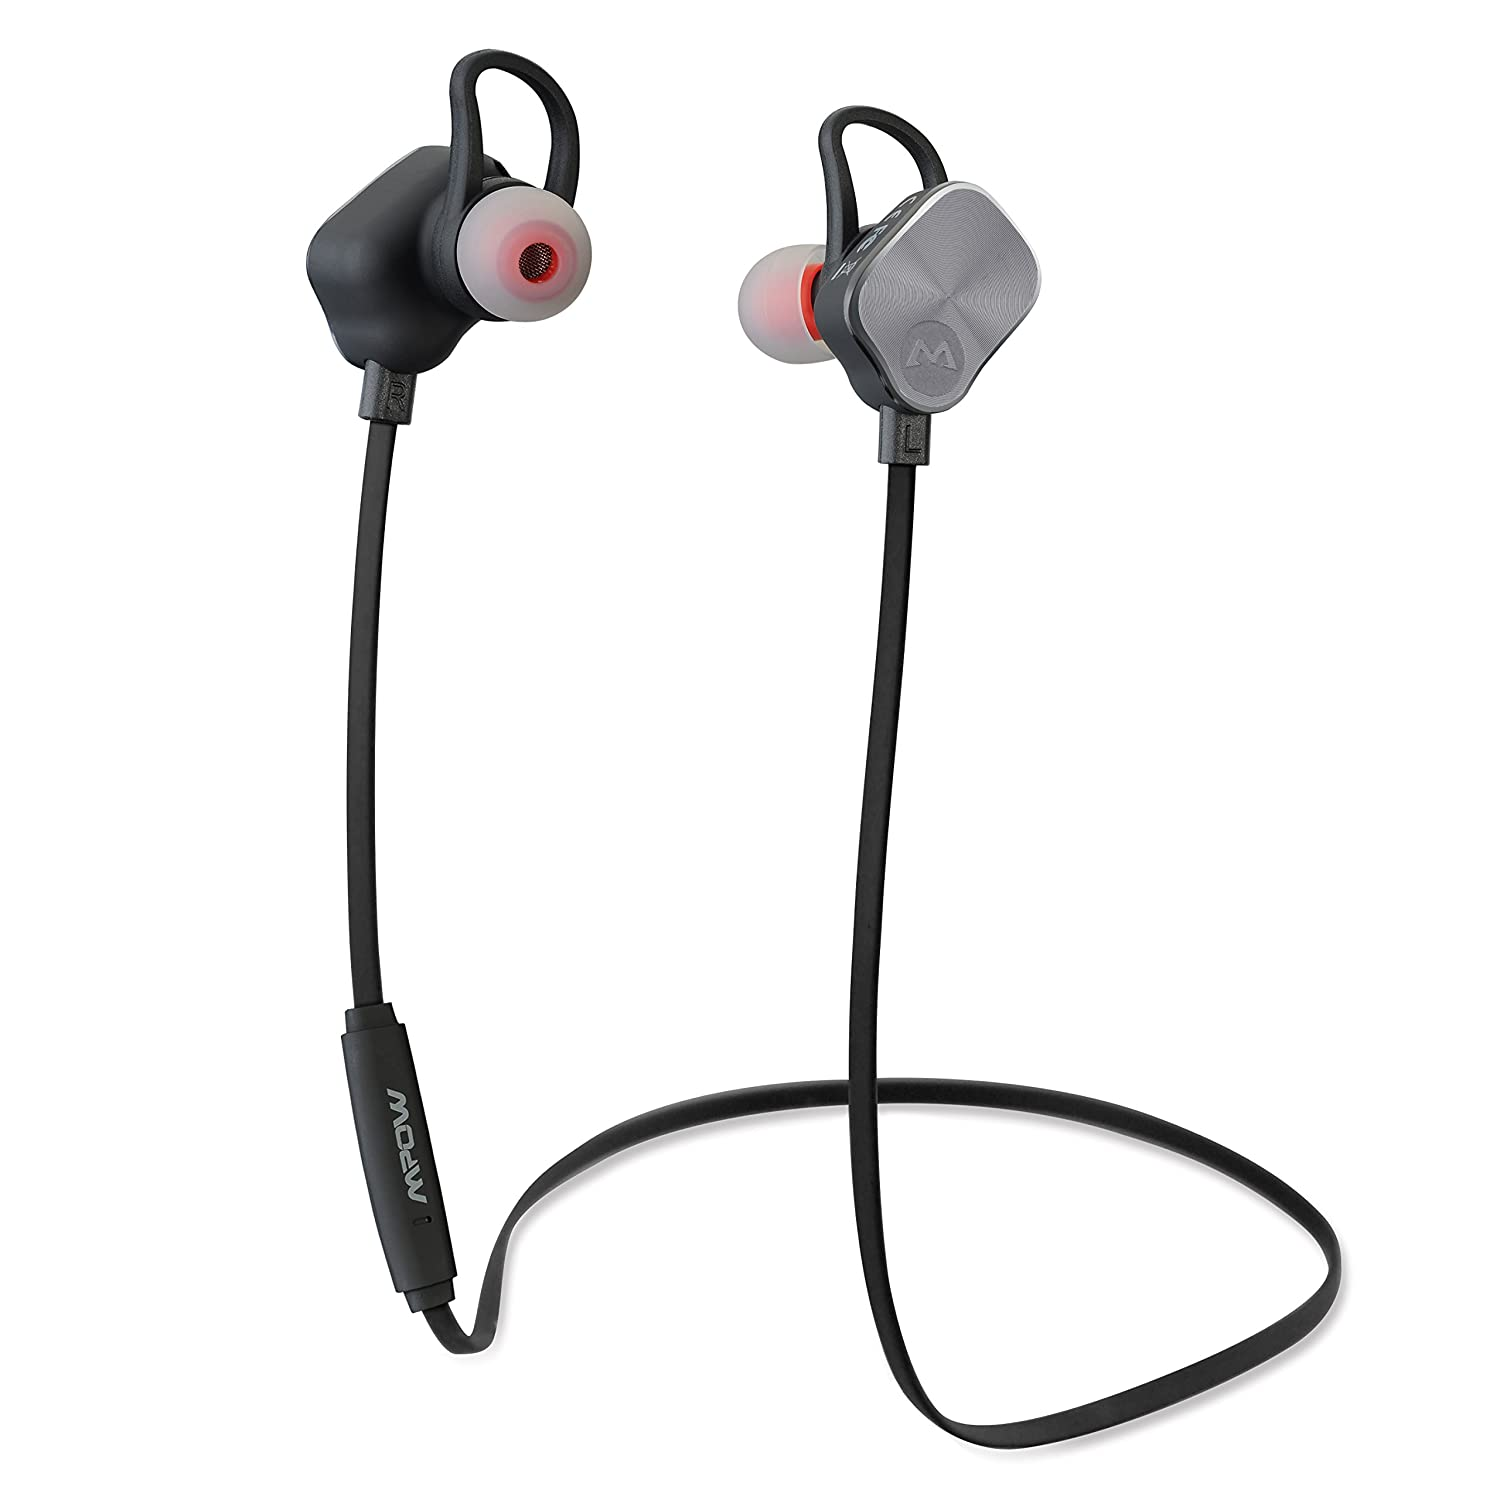 732f88ea5d1 Mpow Magneto Bluetooth 4.1 in-Ear Stereo Sports Headphones with 8-Hour Mic  Talking Time-Silver: Amazon.ca: Cell Phones & Accessories